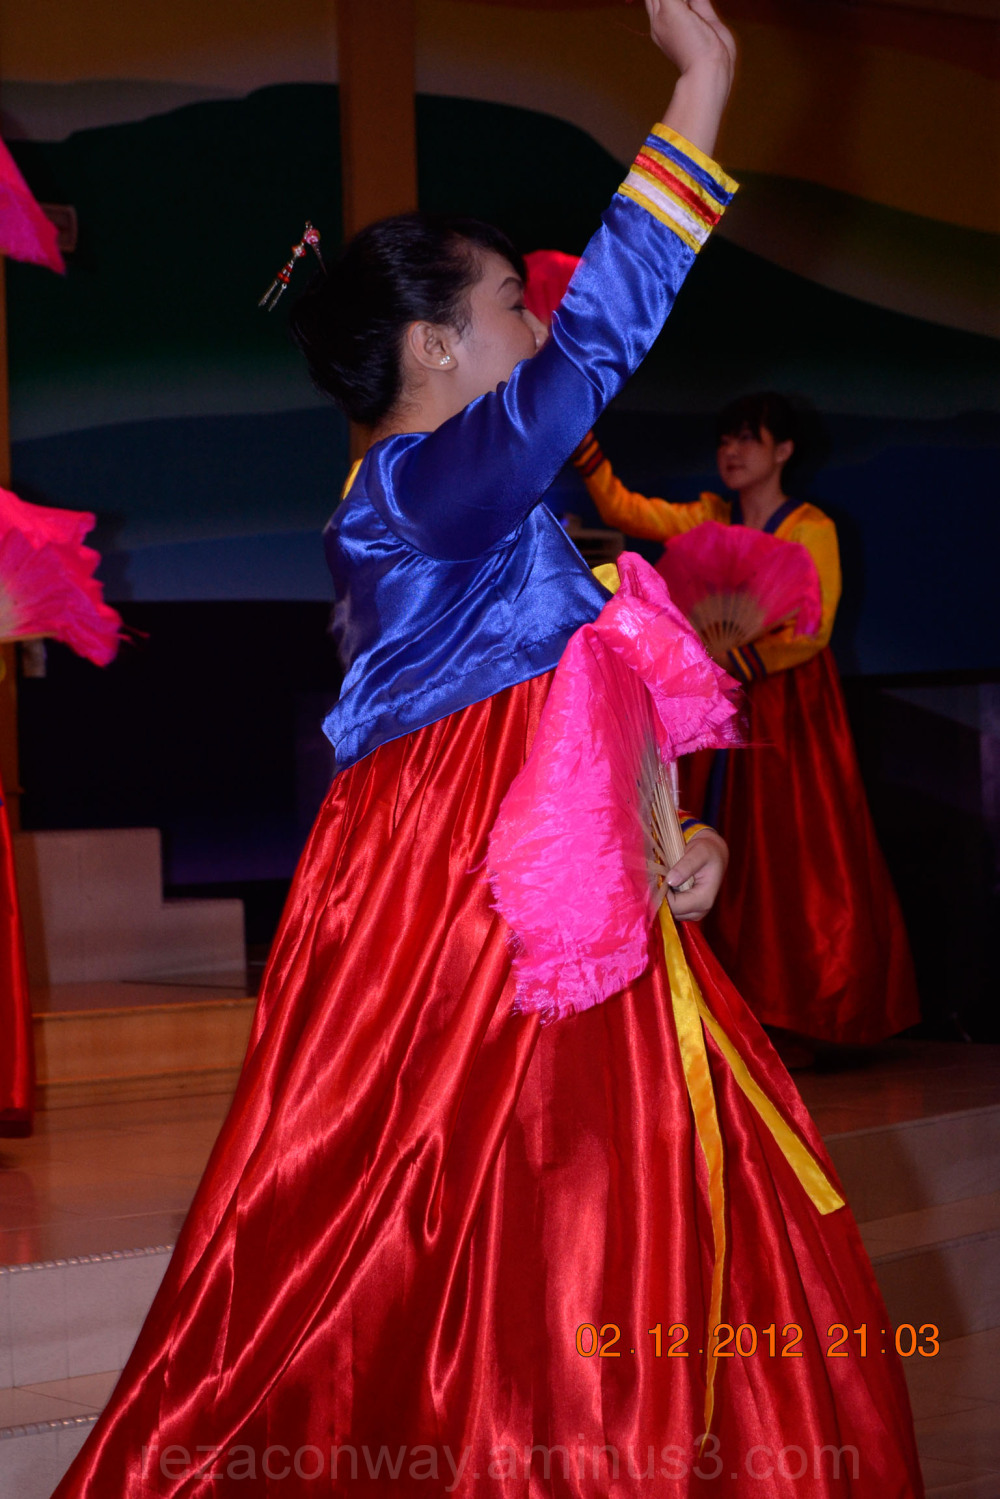 colourfull dancer